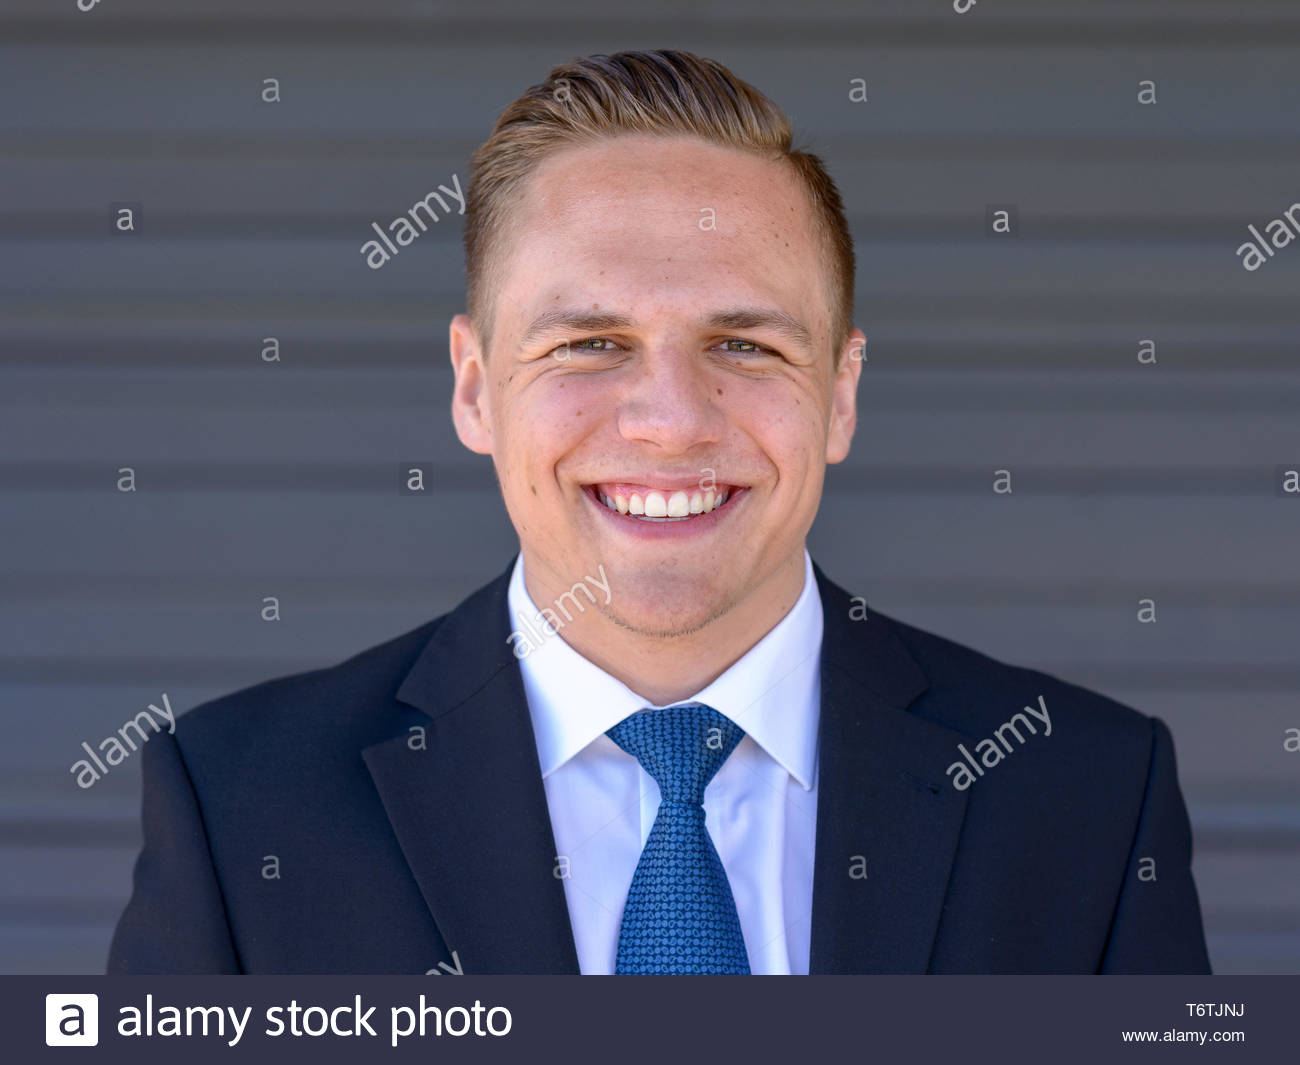 Happy young businessman with a beaming smile - Stock Image